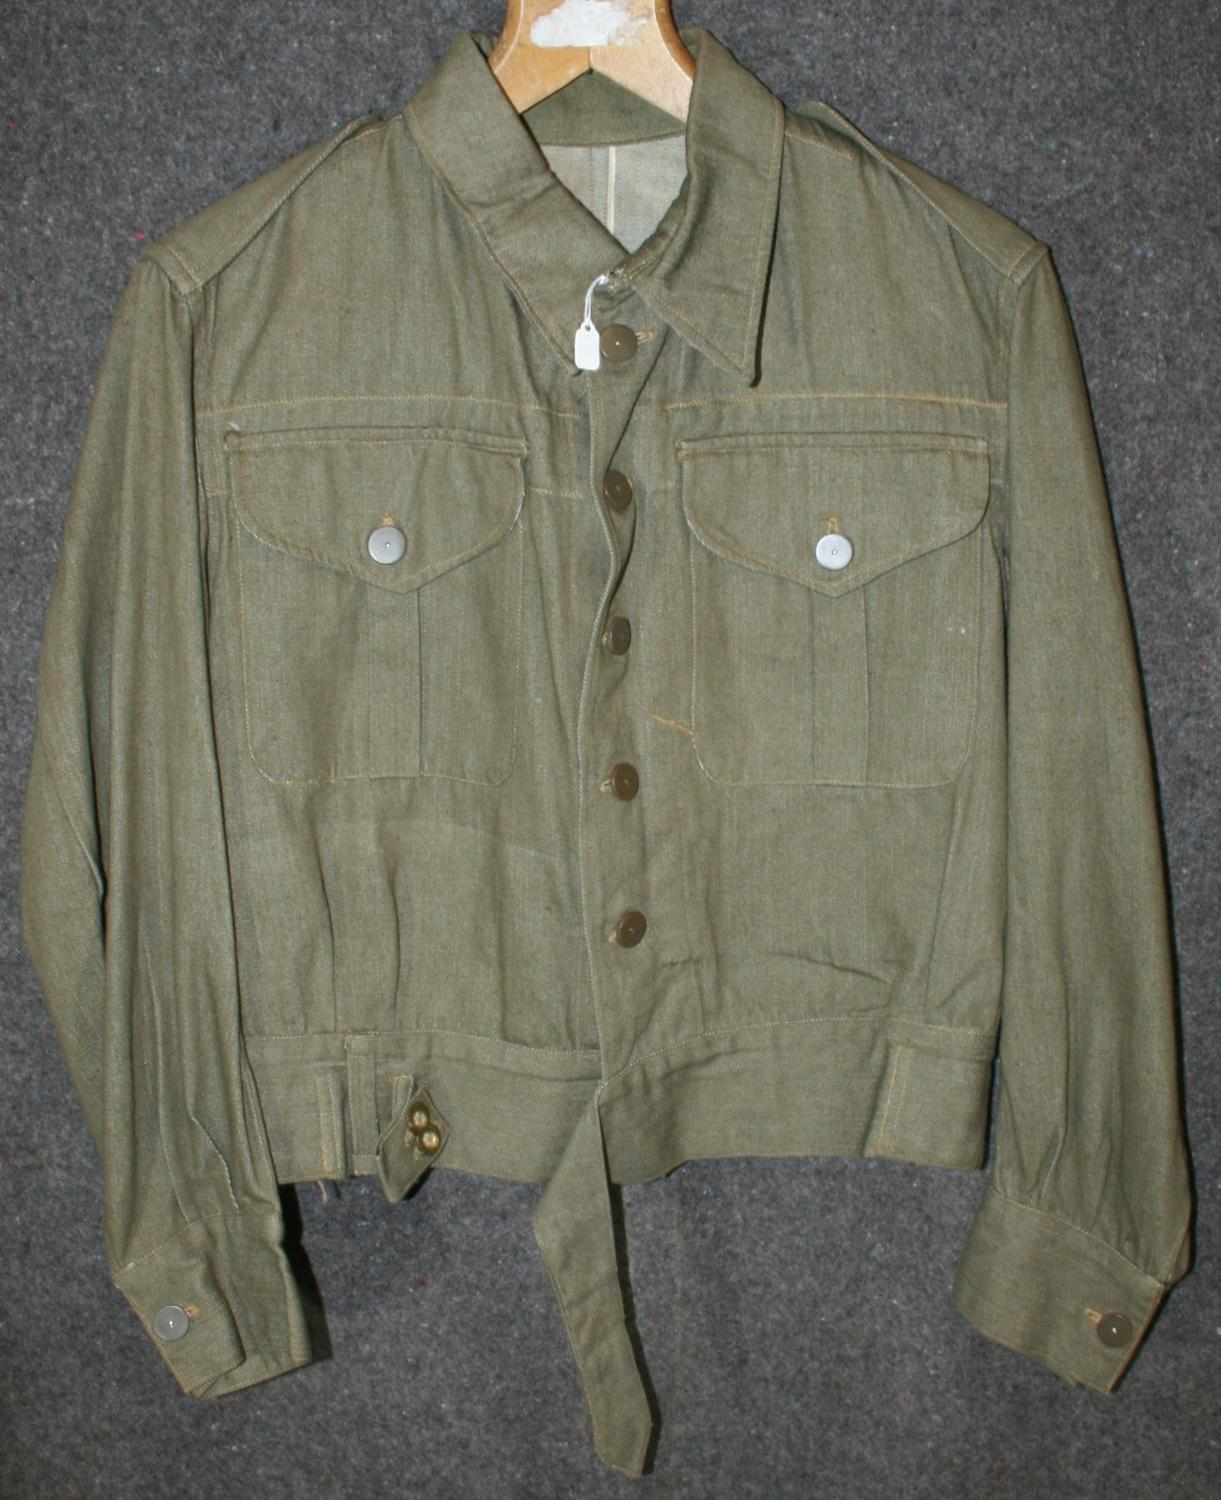 A WWII DENIM BATTLE DRESS BLOUSE